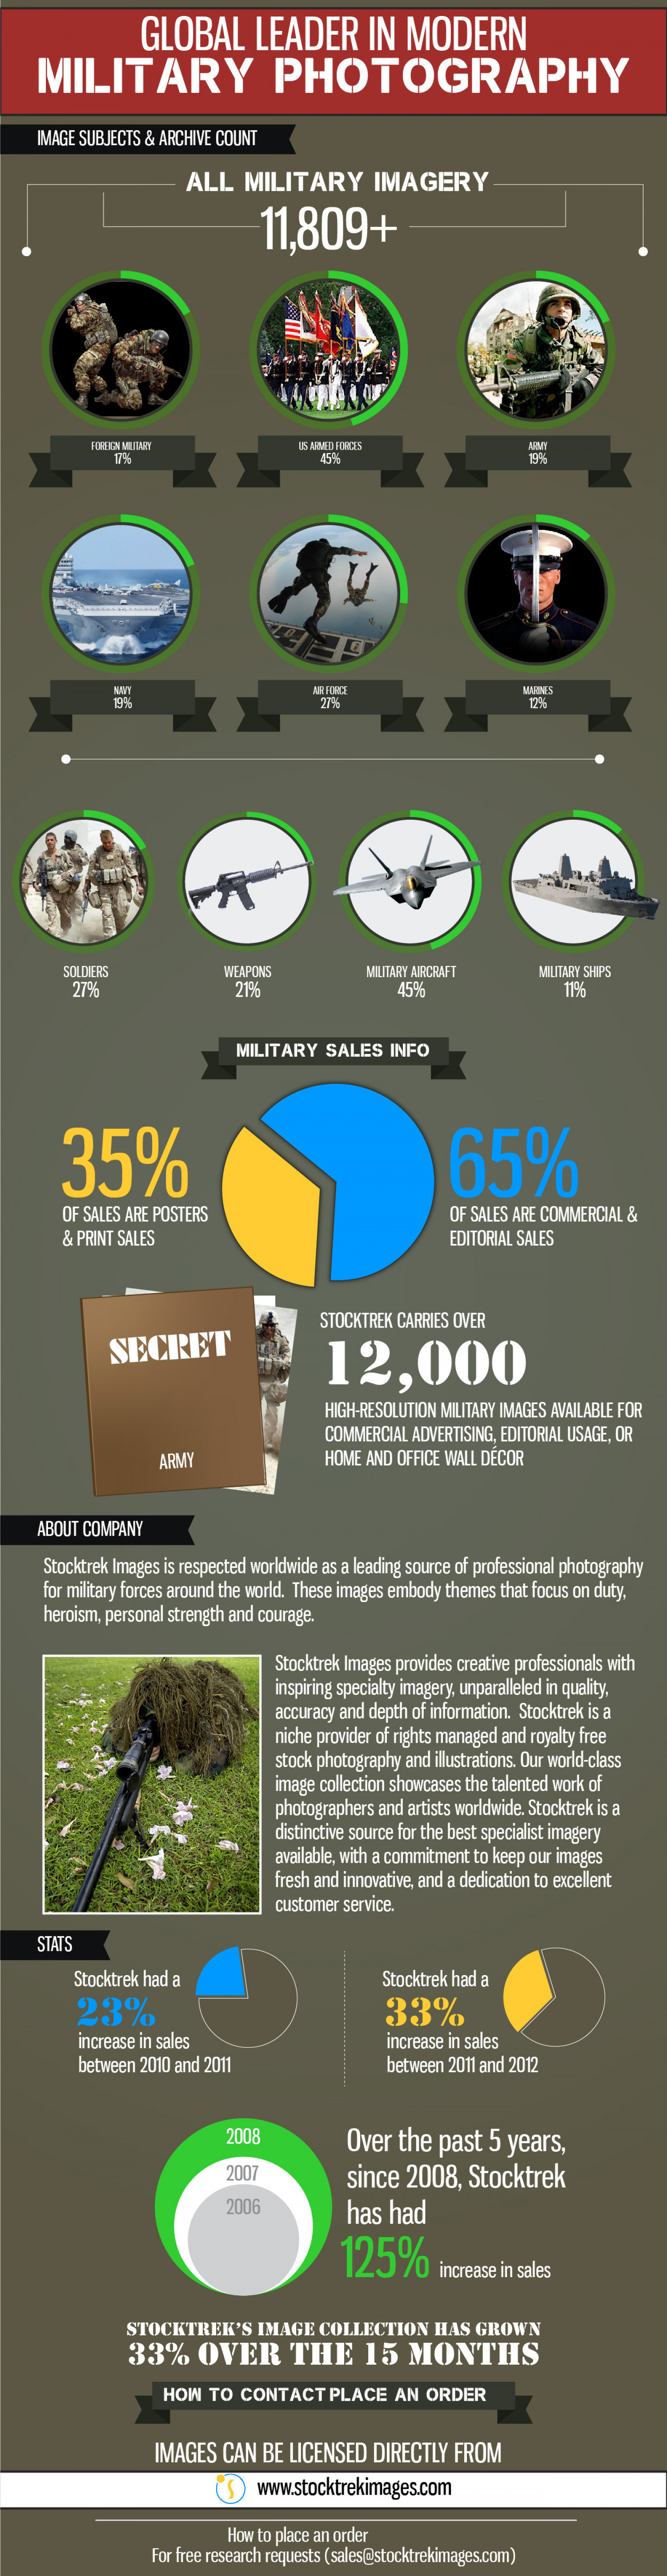 Global Leader in Modern Military Photography Infographic